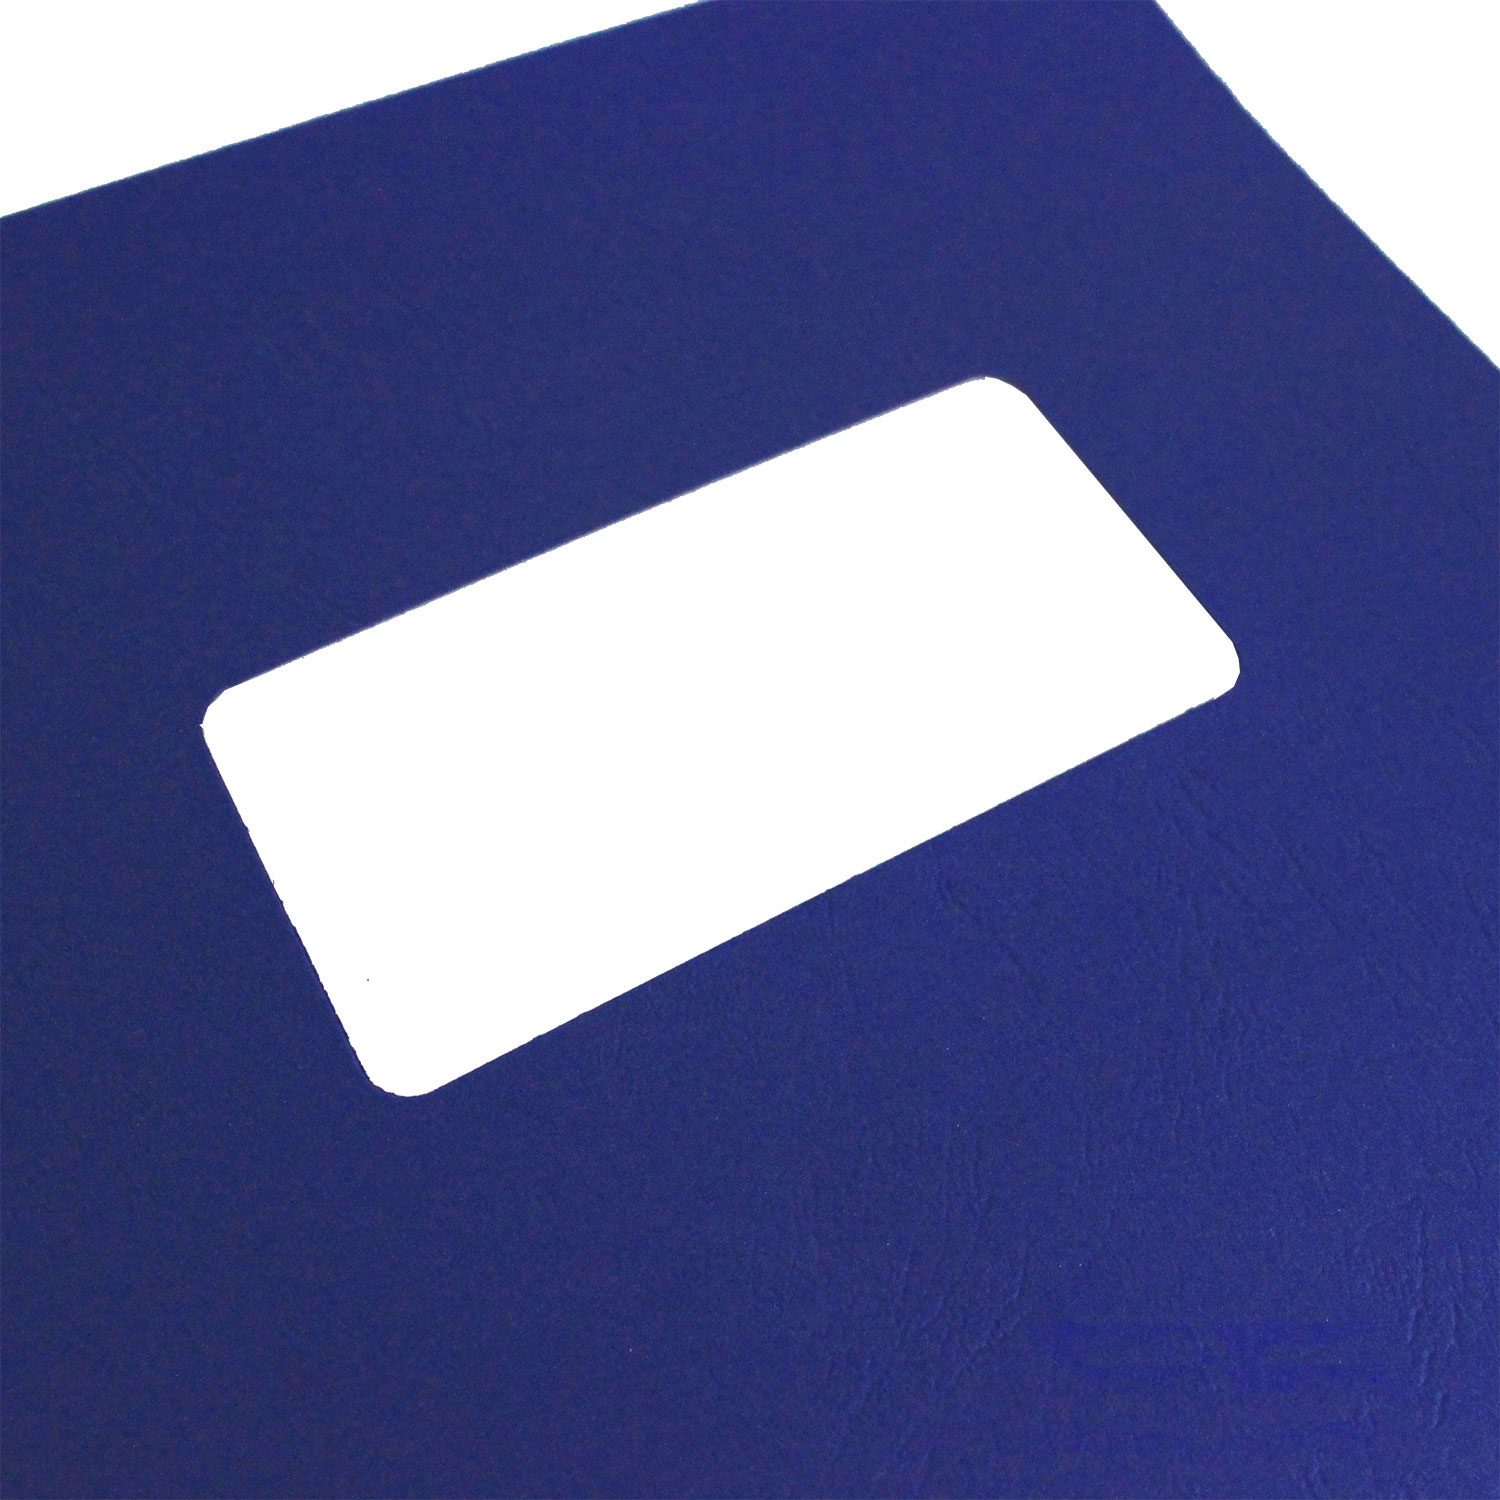 A4 Blue Leathergrain Binding Covers With Window (1000)